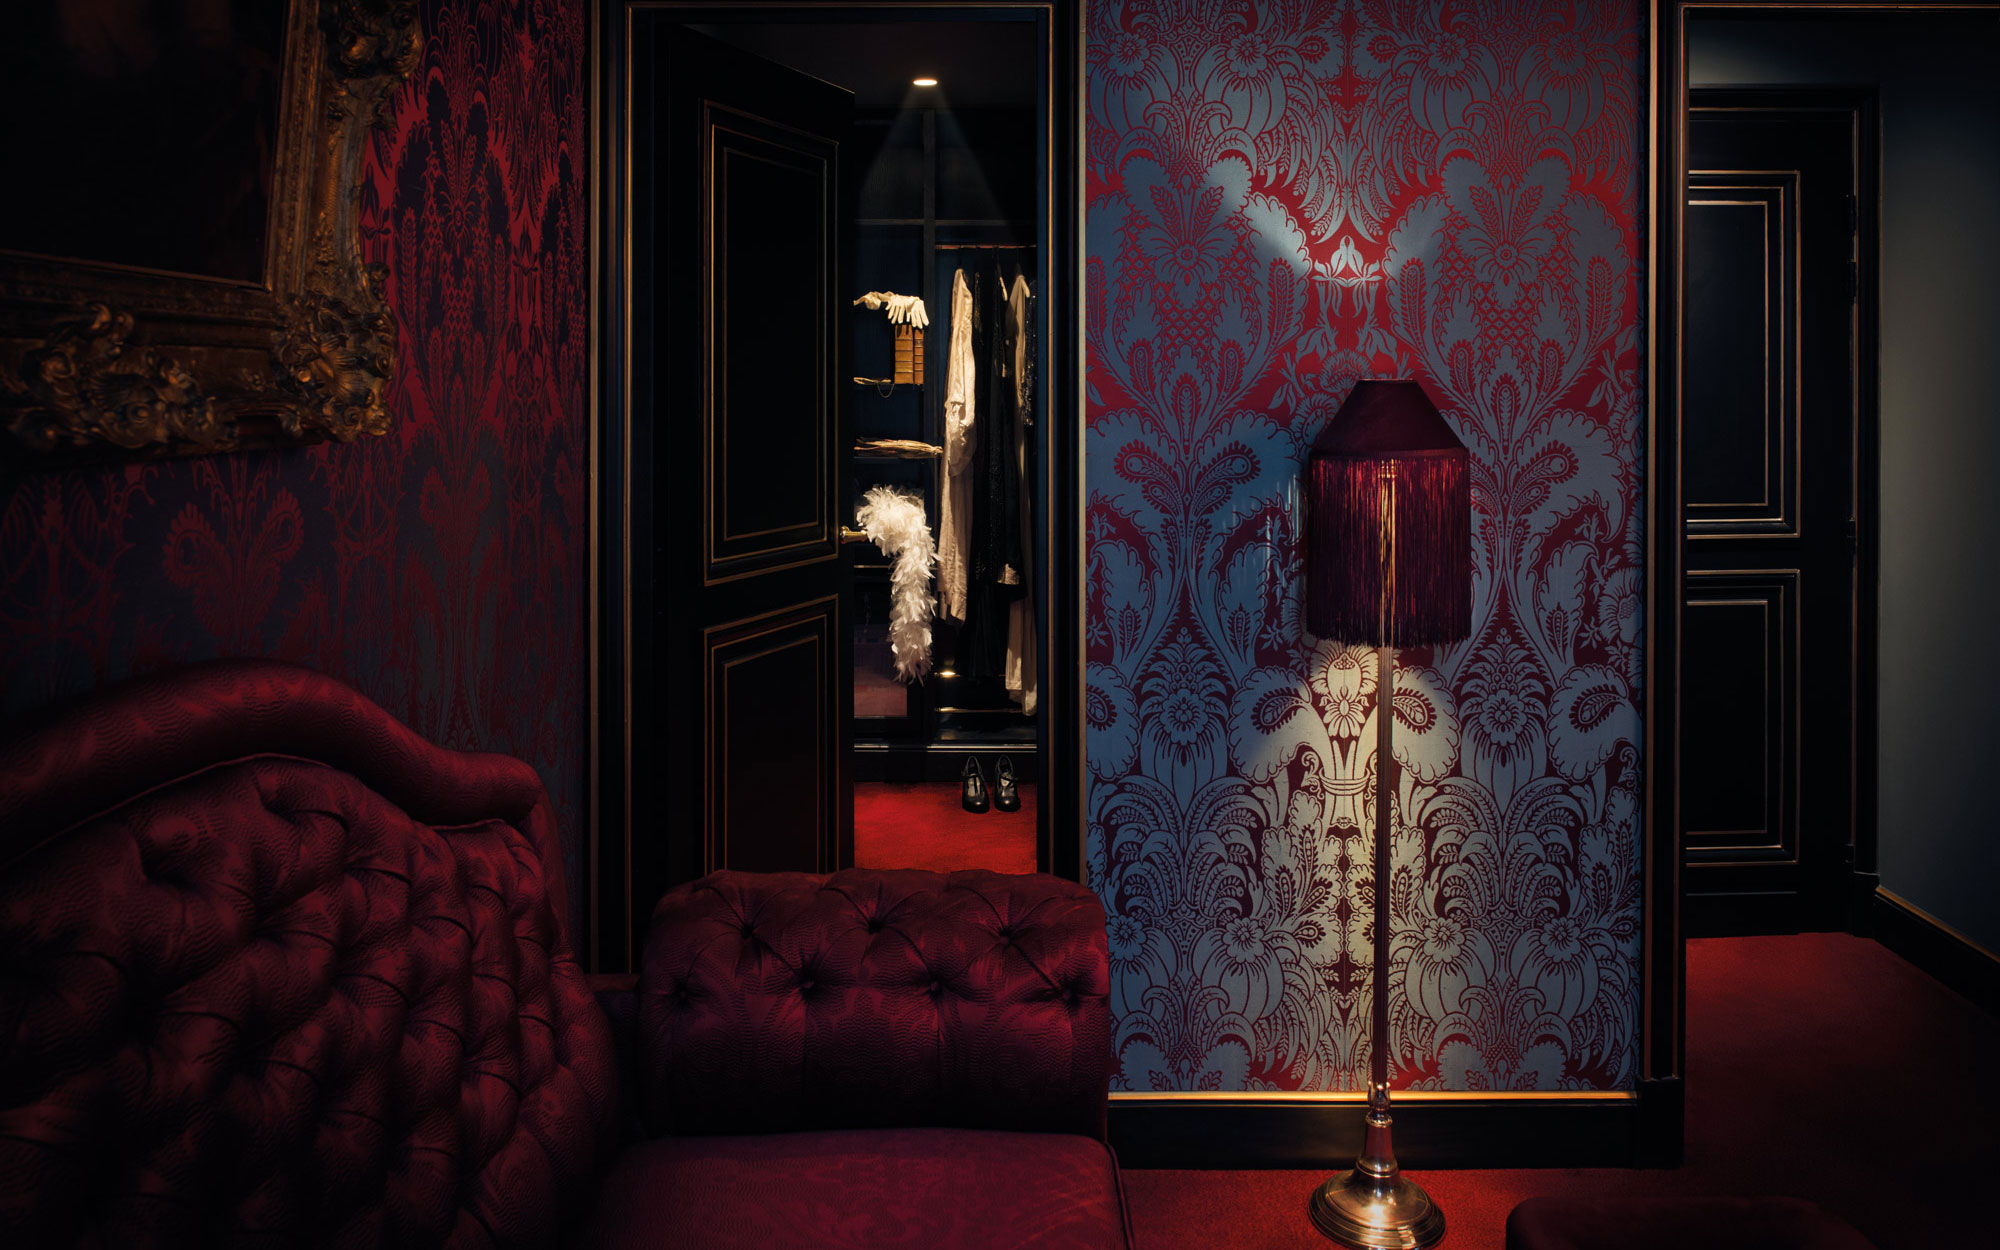 New to Paris: a Vampy Hotel With Design Steeped in Sex: Junior Suite walk-in closet